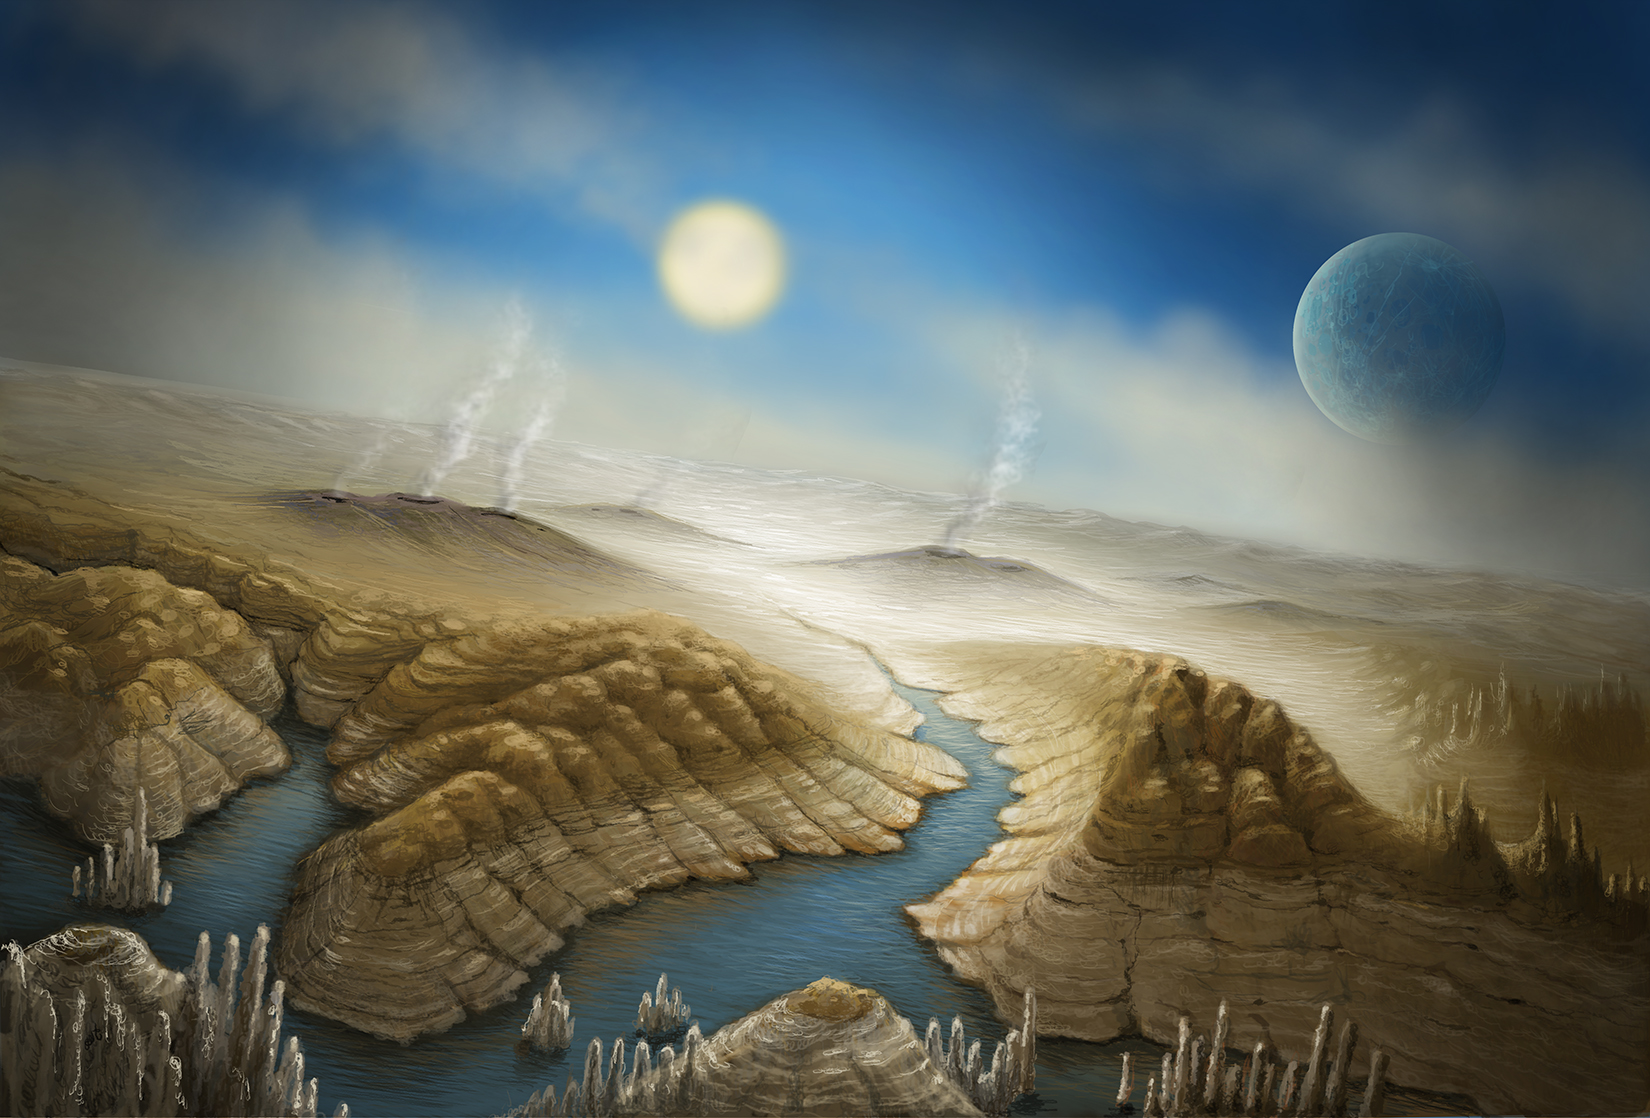 Exoplanet Kepler-452b: Closest Earth Twin in Pictures